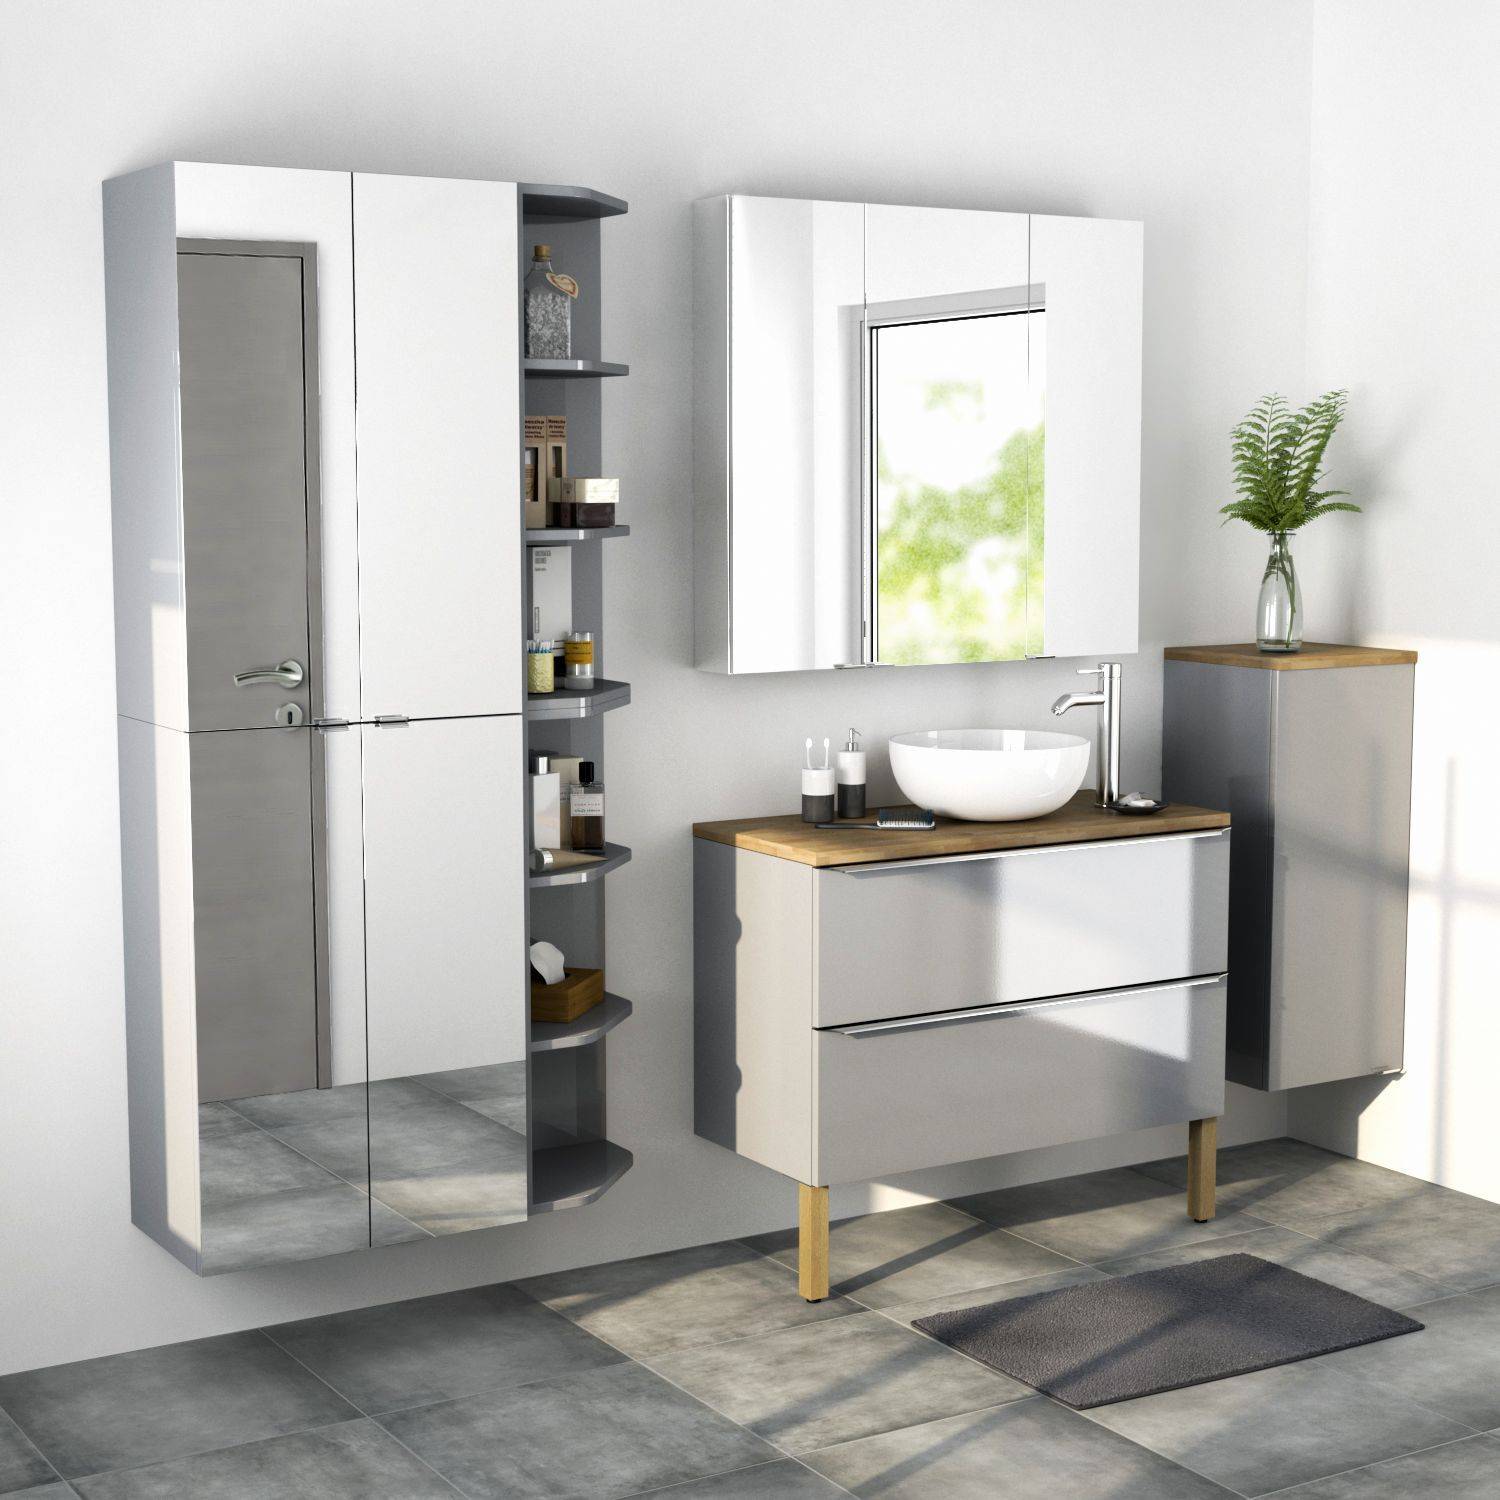 Imandra Modular Bathroom Furniture Bathroom Furniture Bathroom Design Inspiration Bathroom Inspiration Modern